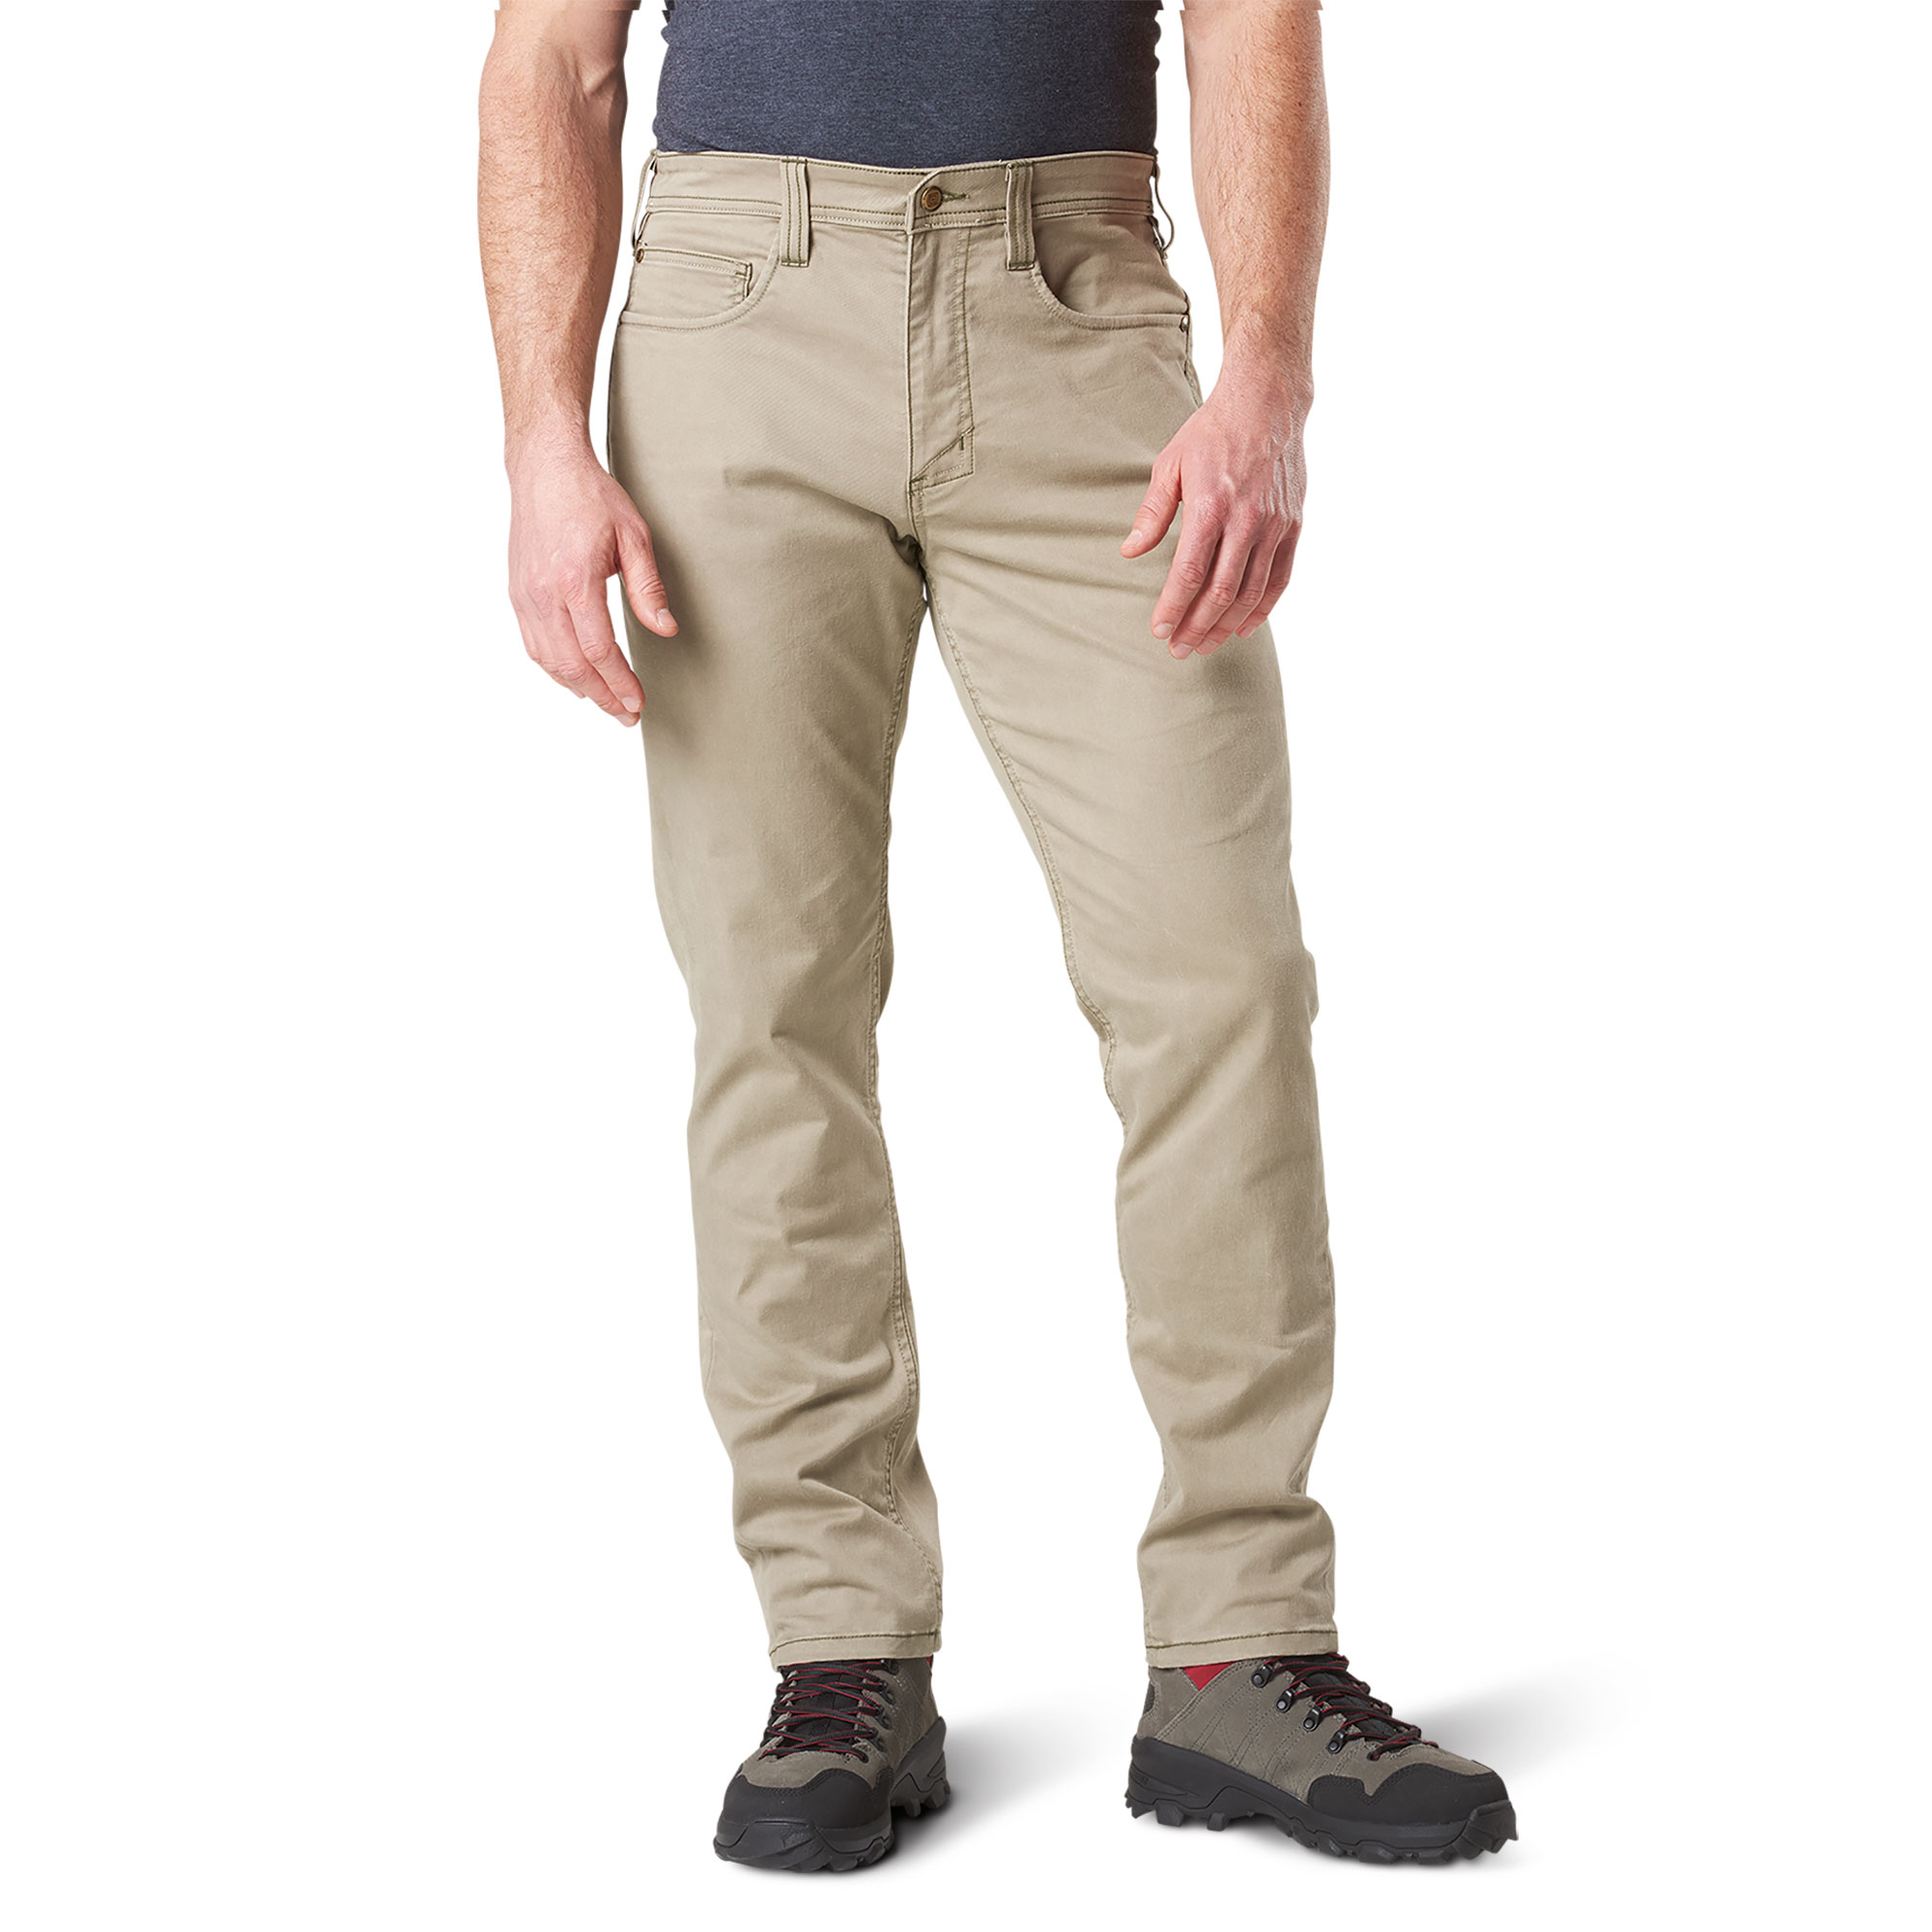 506b1c8a Defender-Flex Slim Pant - Men's 5 Pocket Pants - 5.11 Tactical